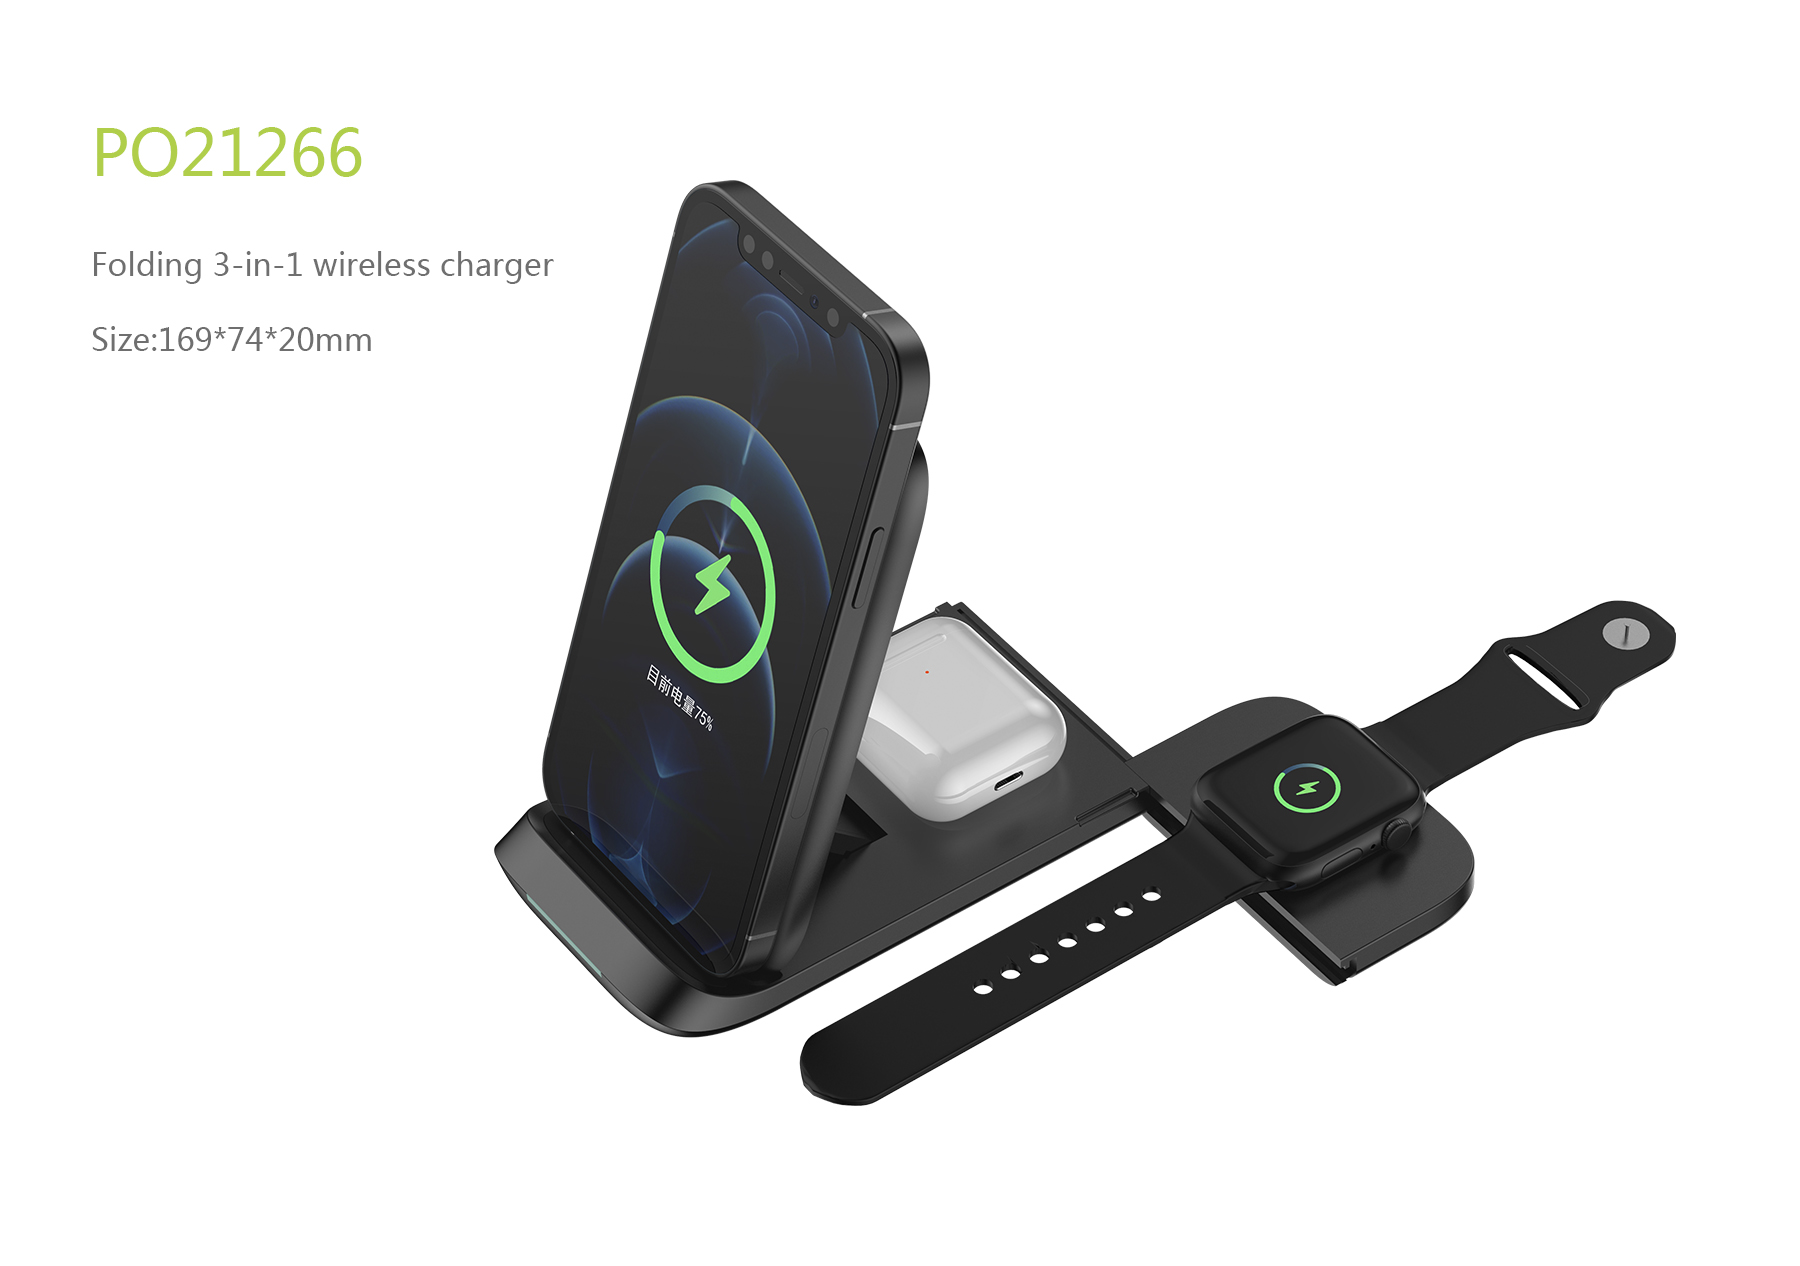 Folding 3-in-1 wireless charger